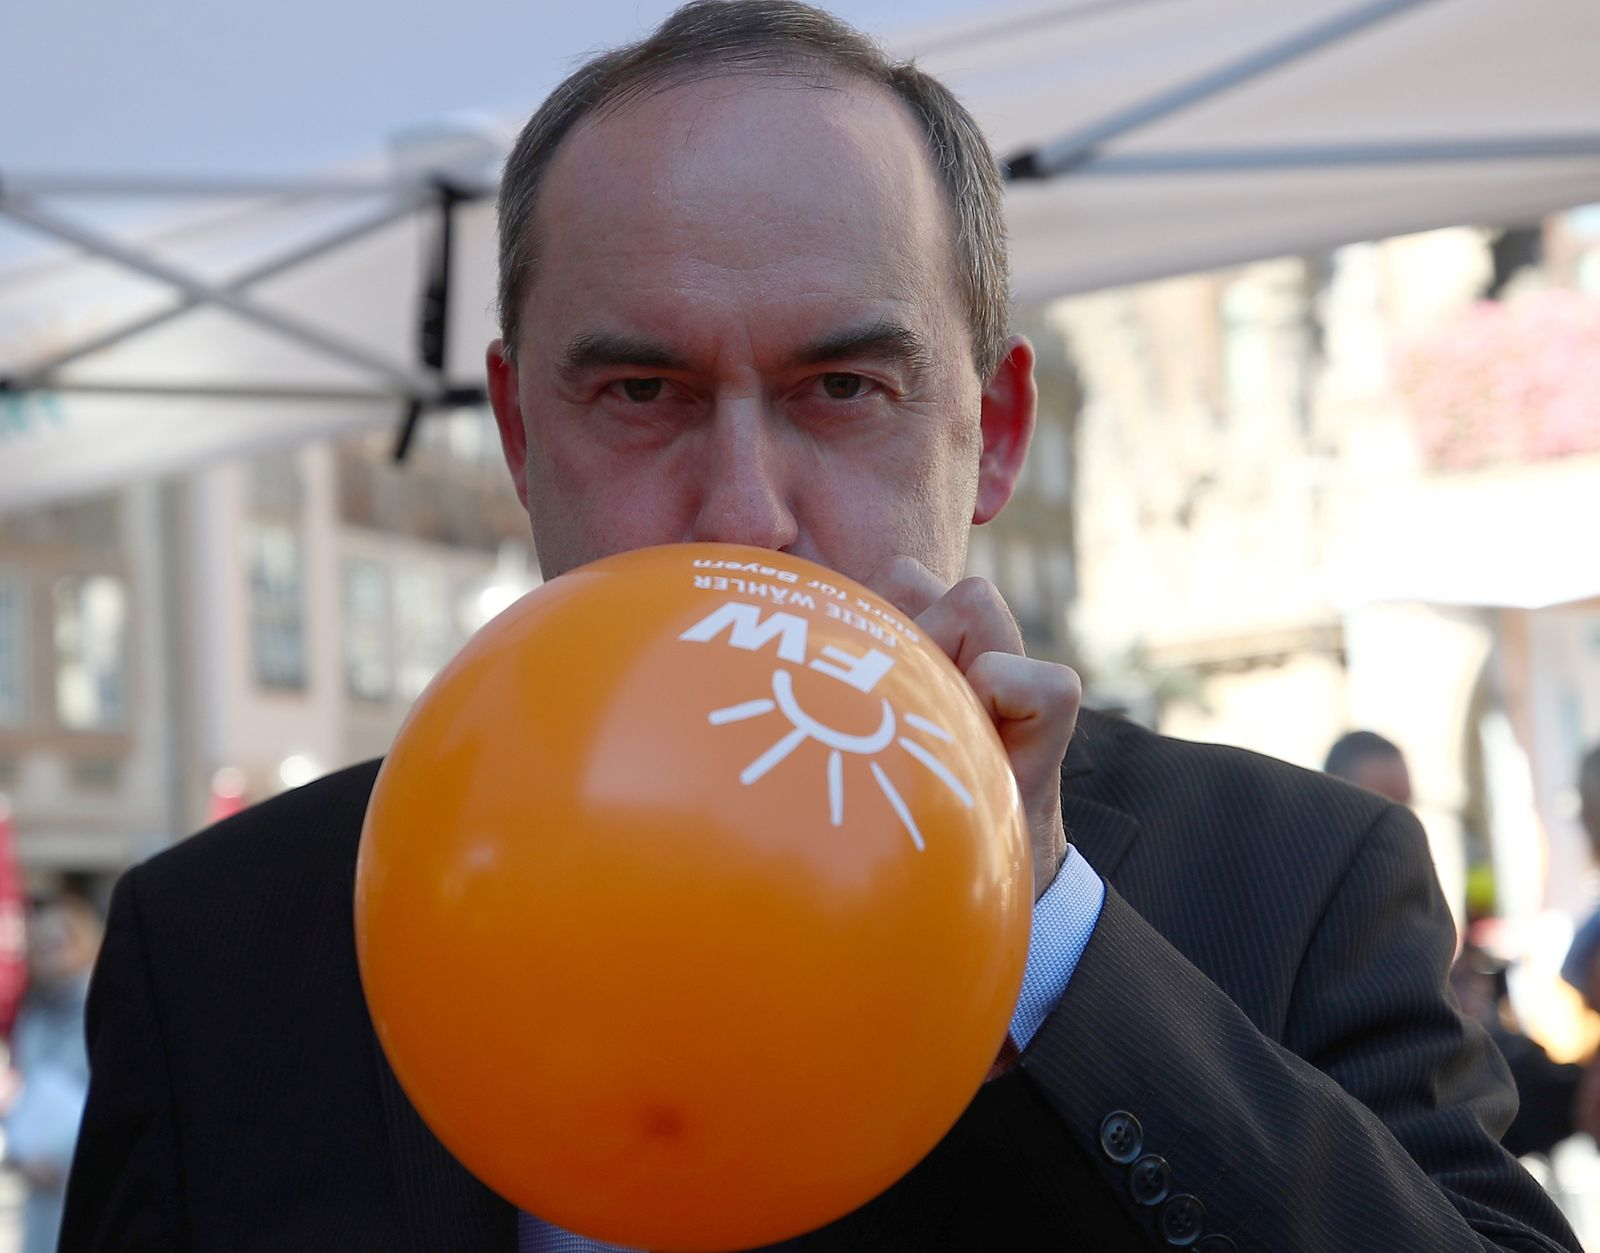 Aiwanger, top candidate of Bavaria's Freie Waehler (Free Voters) party, attends an election campaign rally in Munich